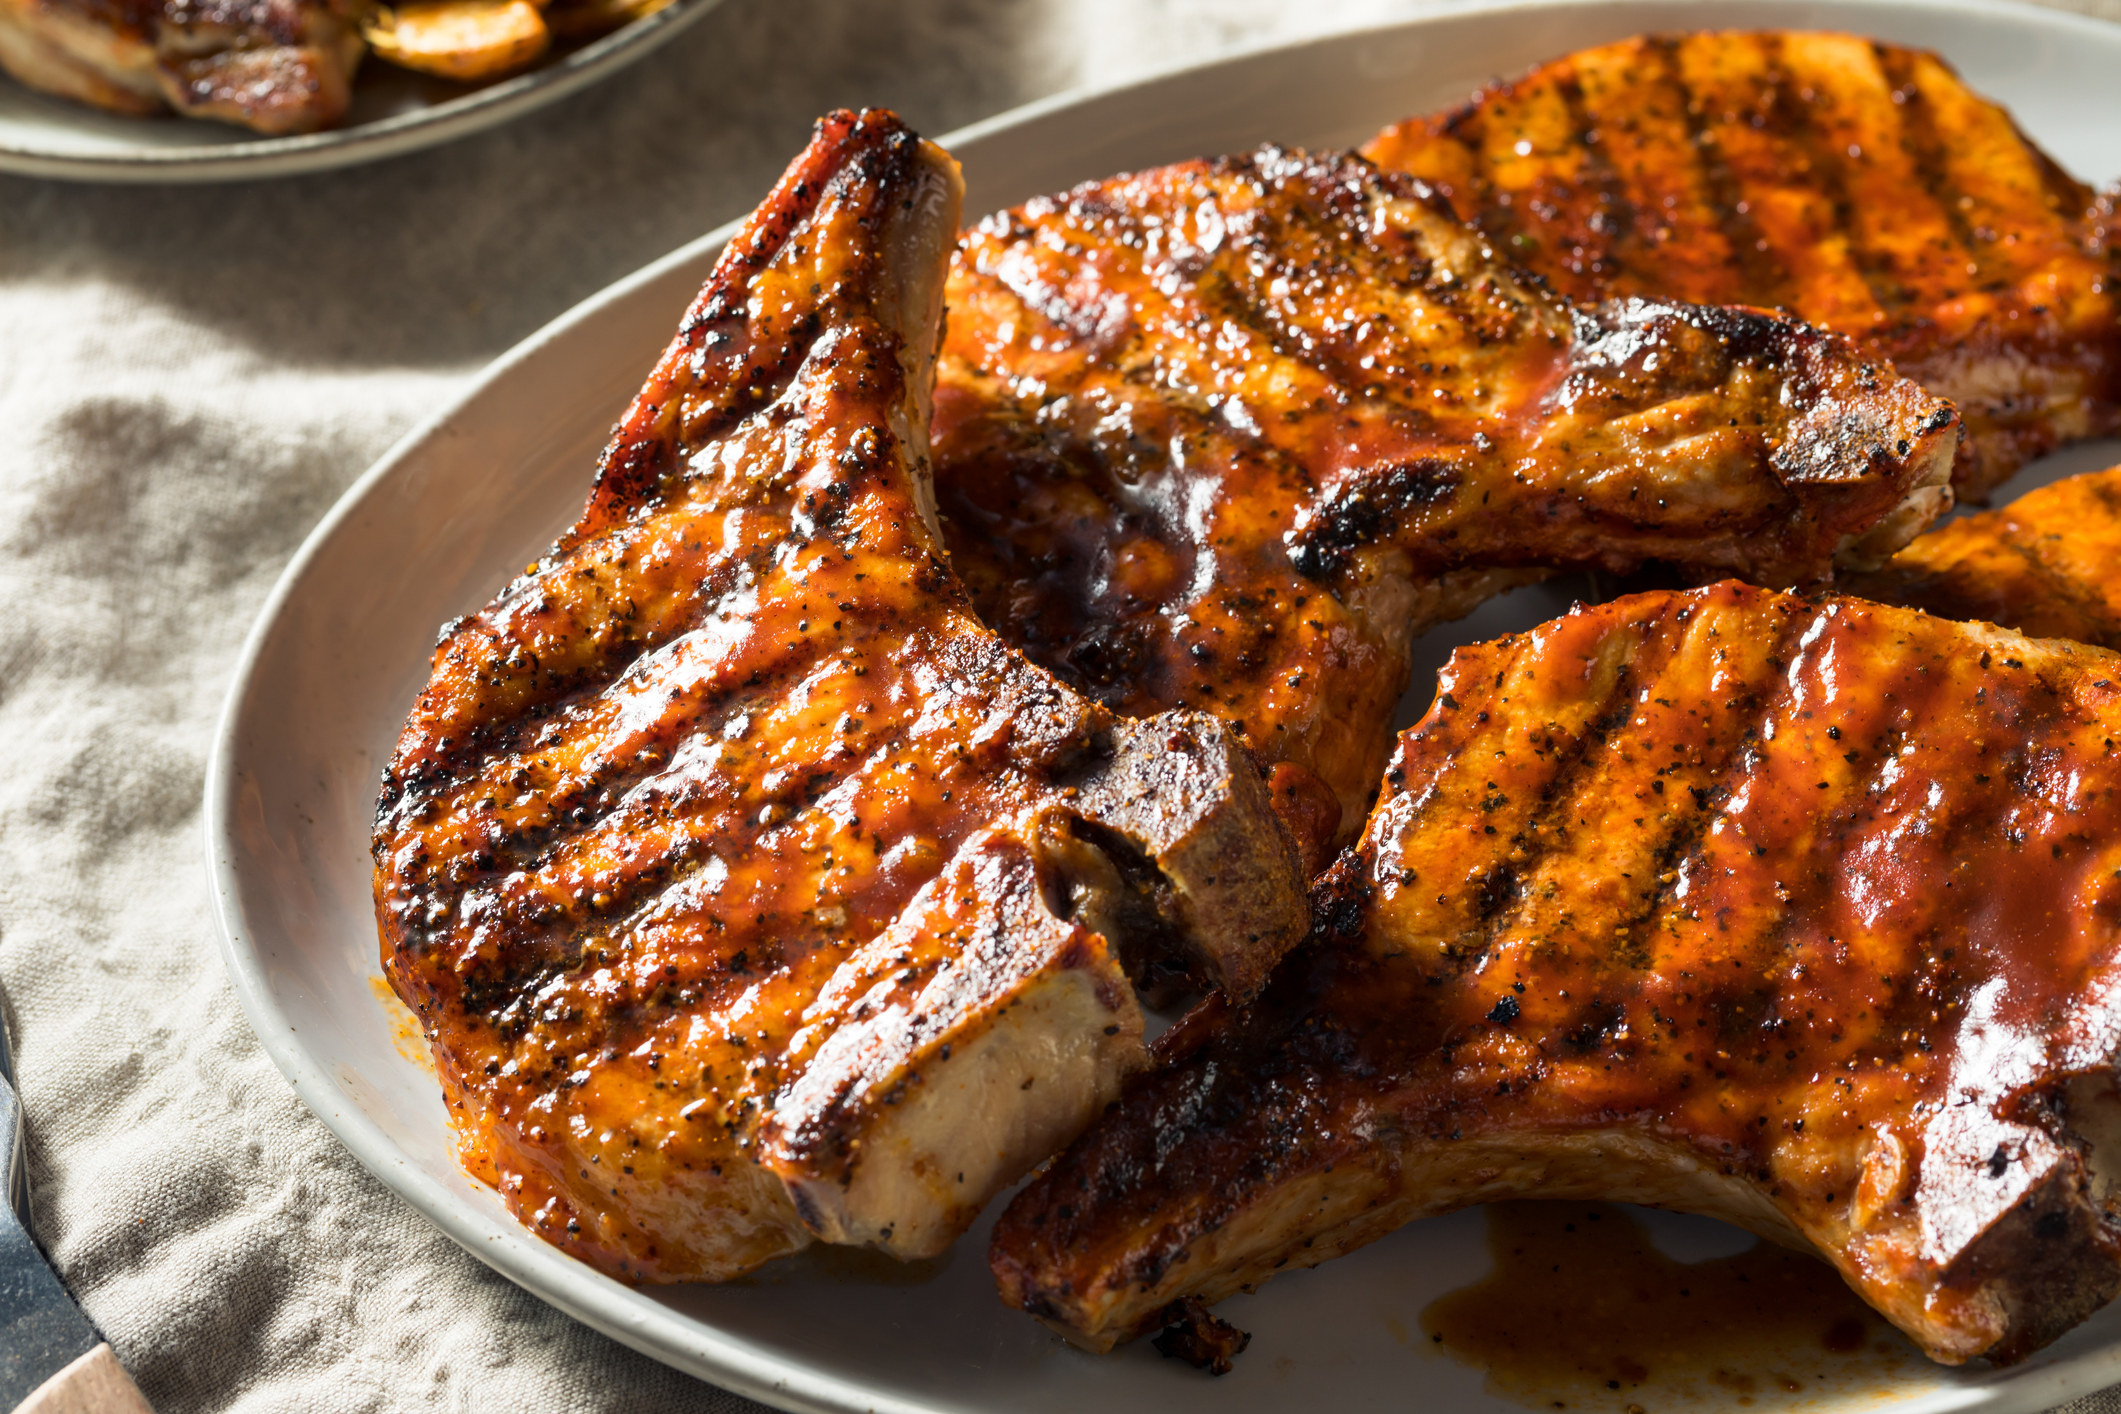 A plate of grilled bone-in pork chops with barbecue sauce.